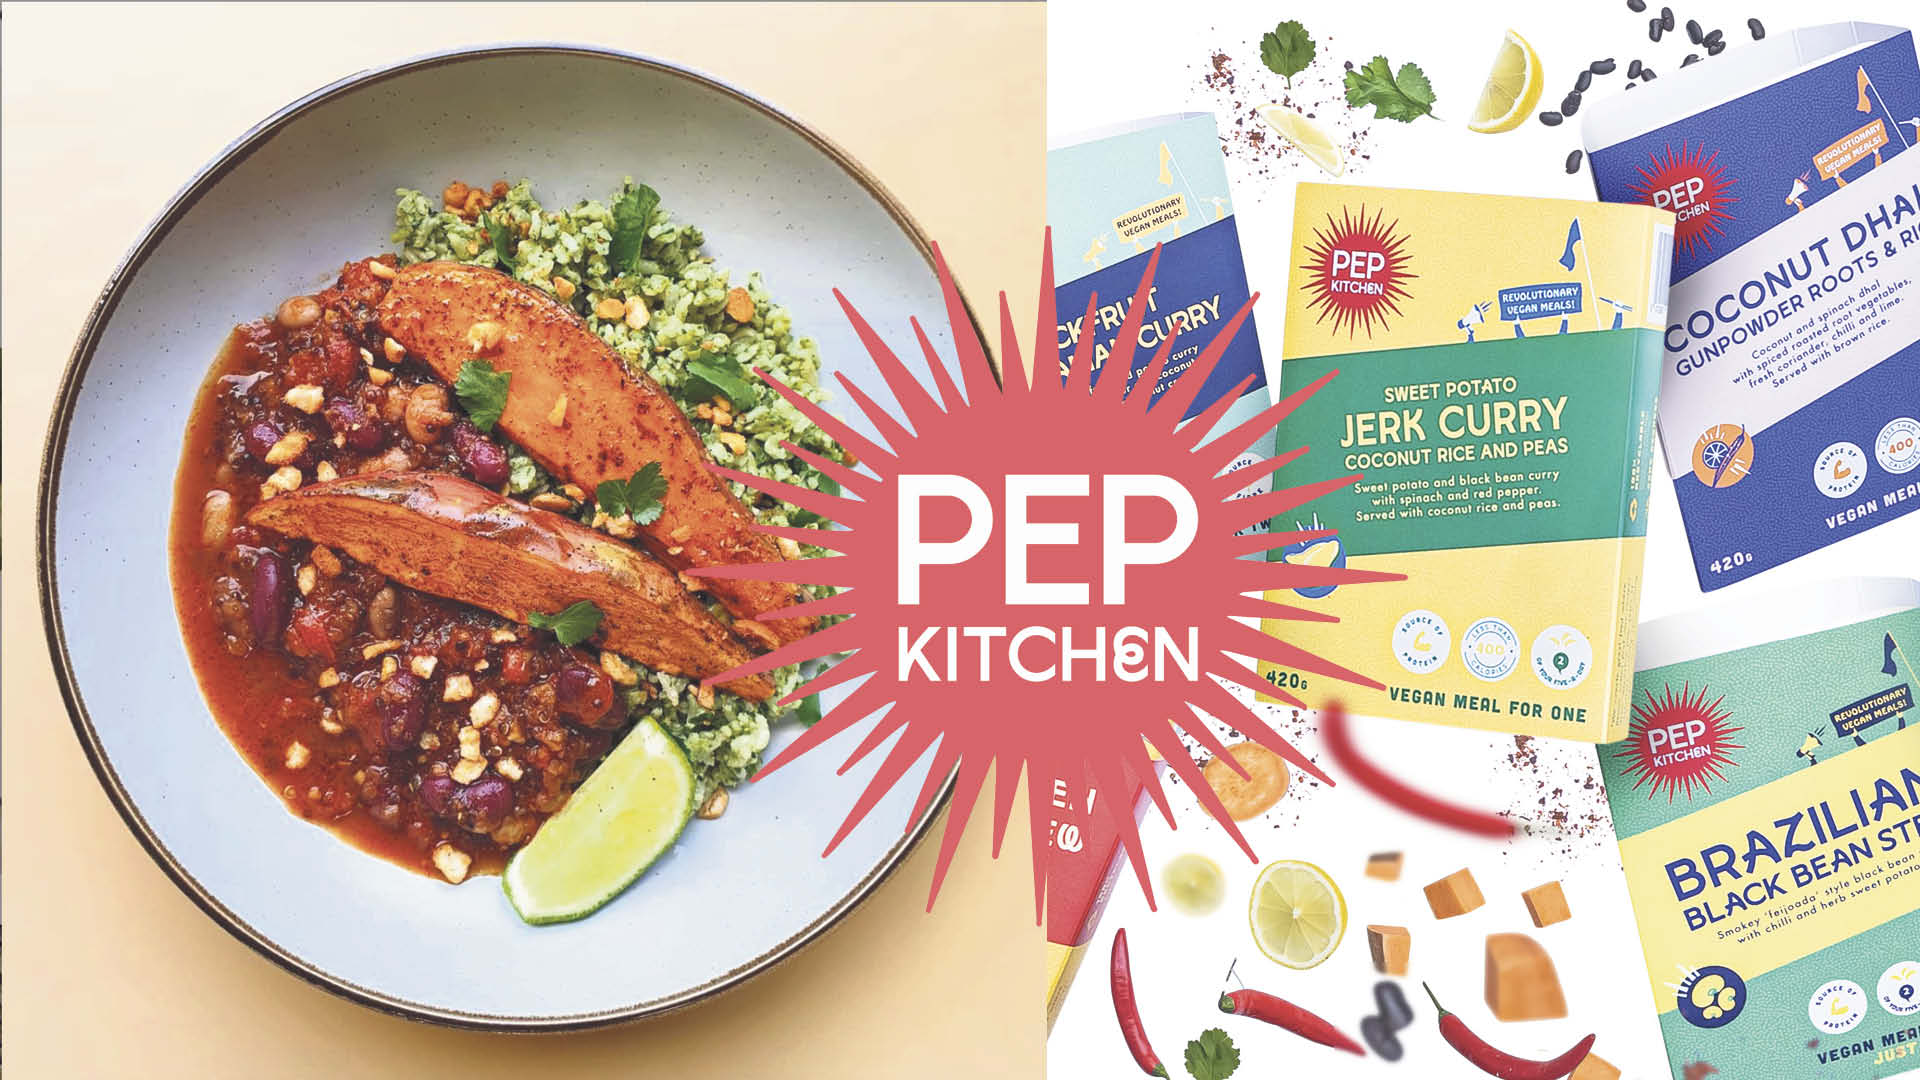 Voucher to spend on chef-made PEP Kitchen meals